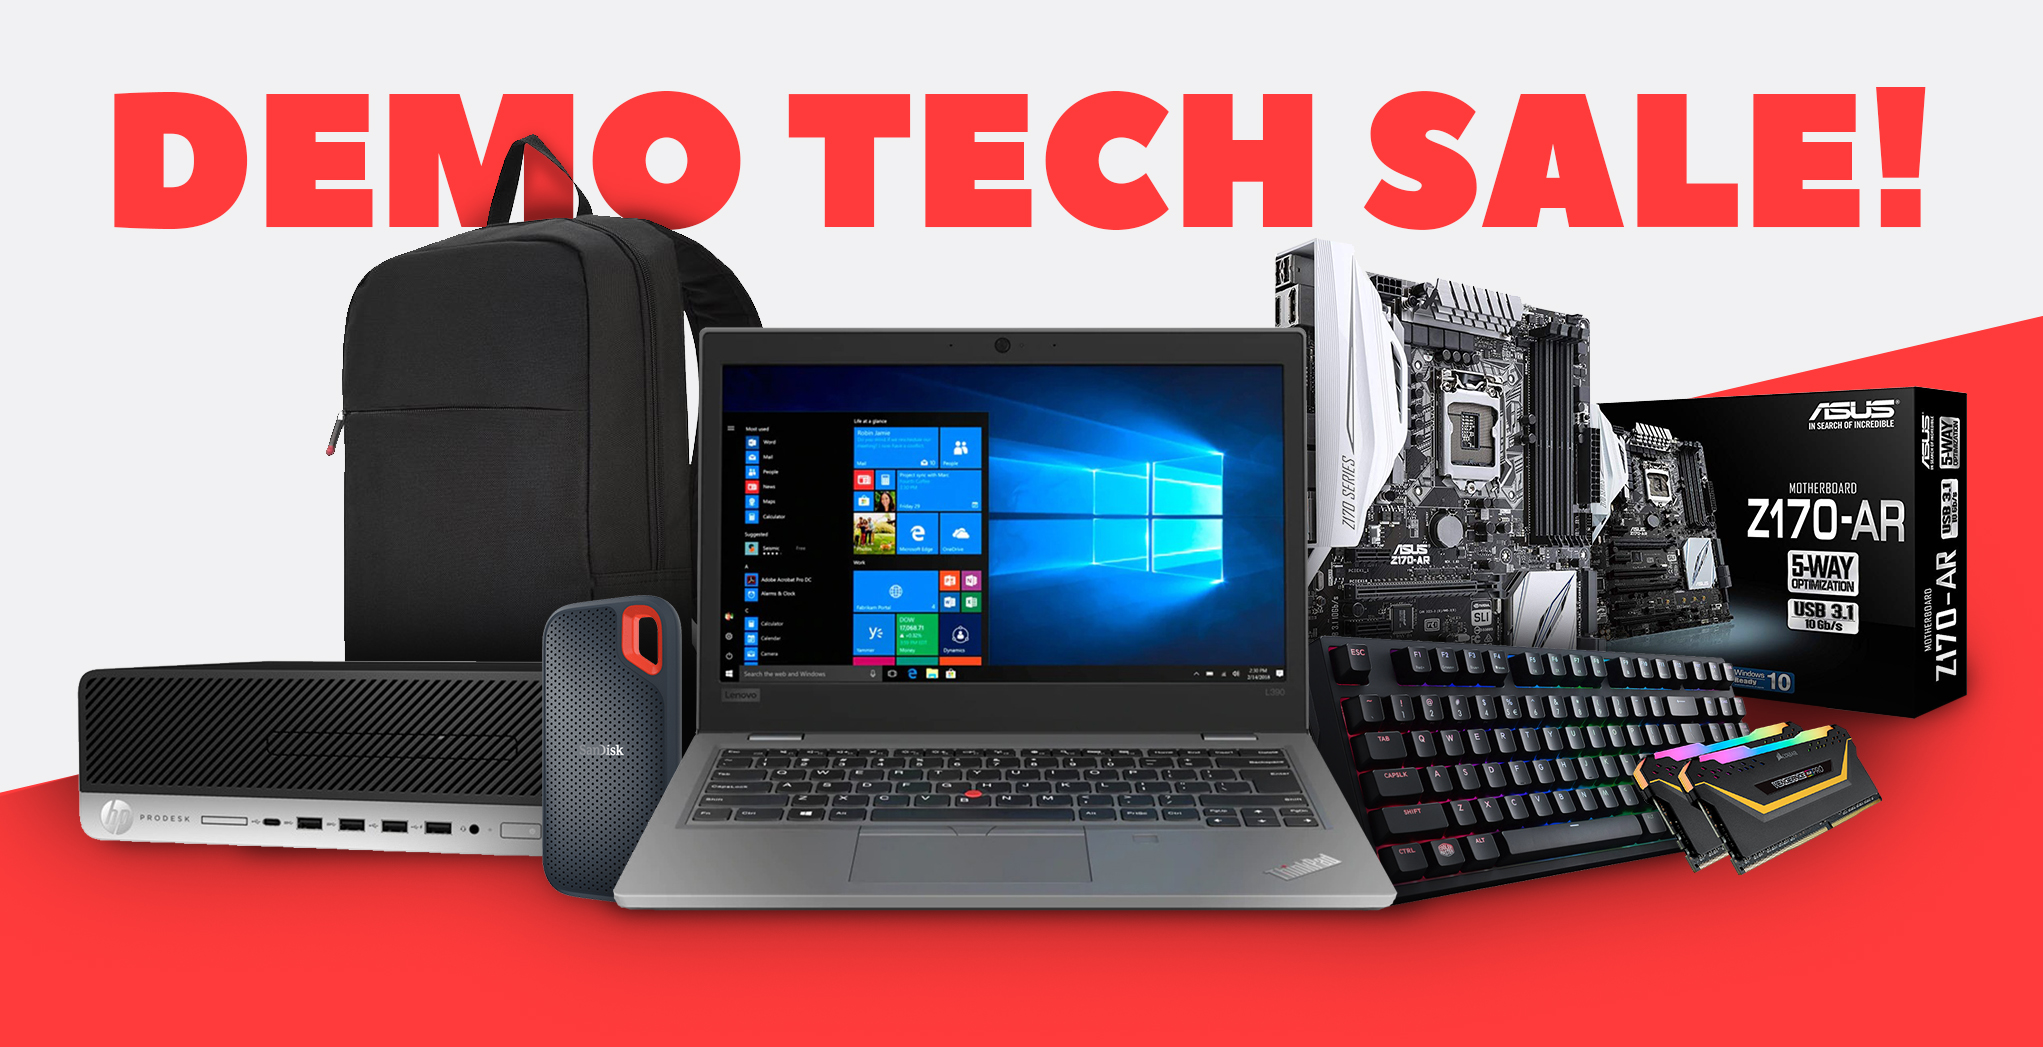 Demo Tech Products Sale